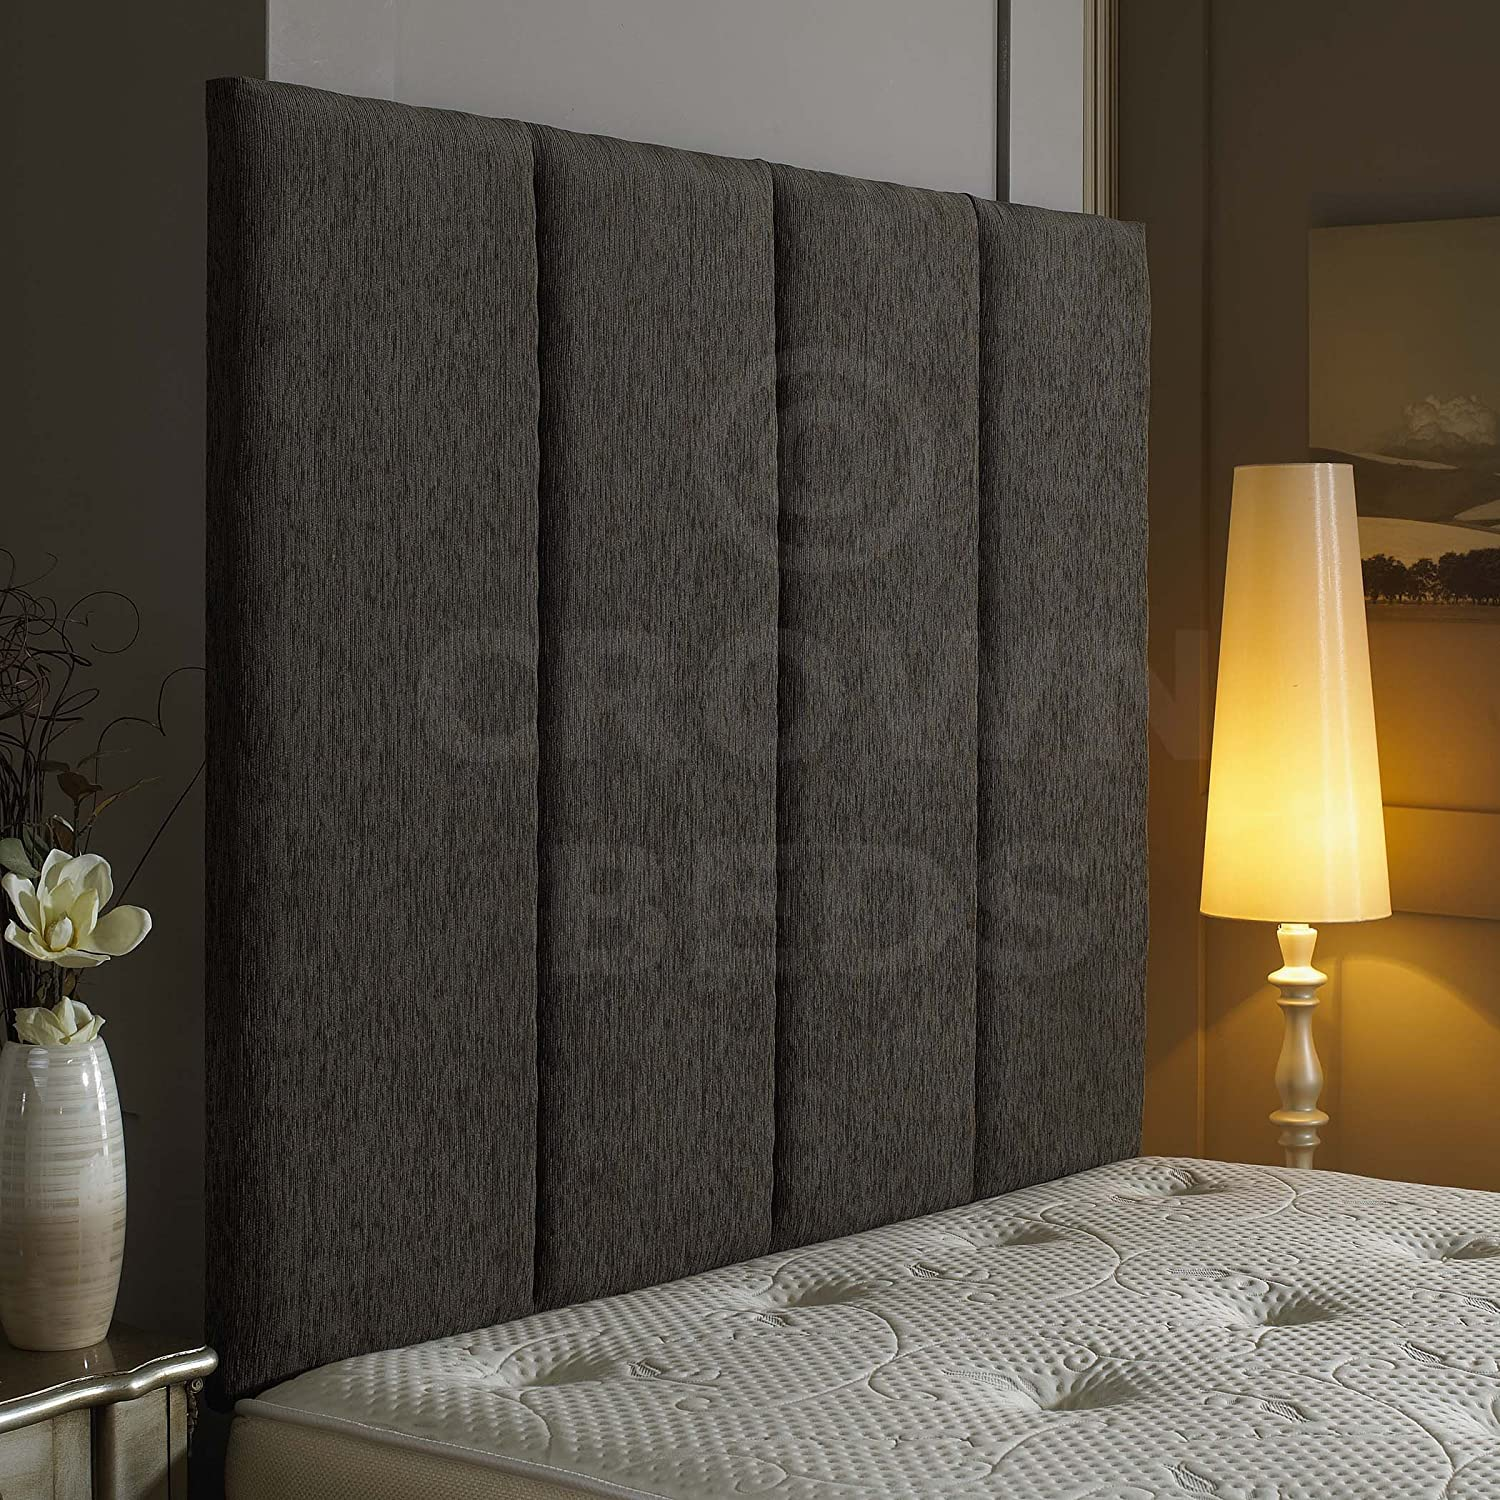 Grey 4ft6 (double) 44'' CROWNBEDSUK  EXCELLENT ALTON WALL HEADBOARD IN 2ft6,3ft,4ft,4ft6,5ft,6ft AND HEIGHT OPTIONS  (Grey, 4ft6 (double) 44'')